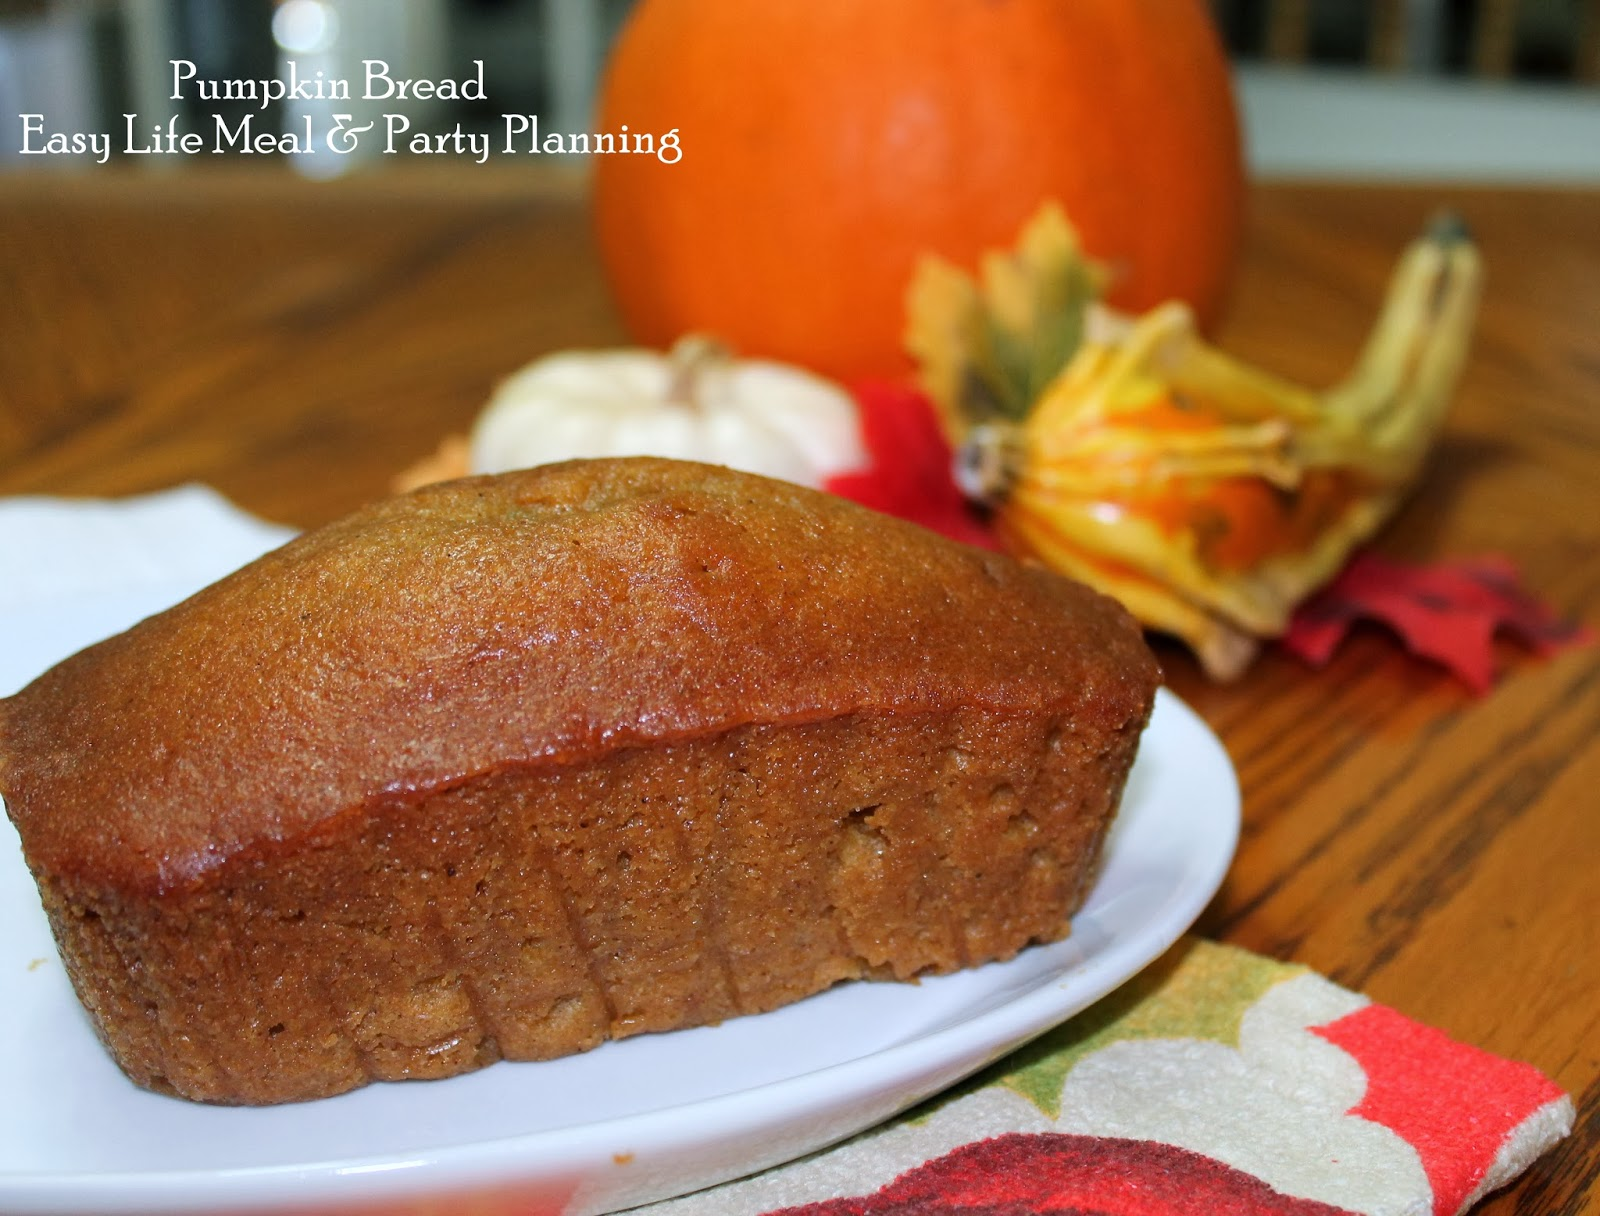 The Very Best Pumpkin Bread: Easy Life Meal & Party Planning